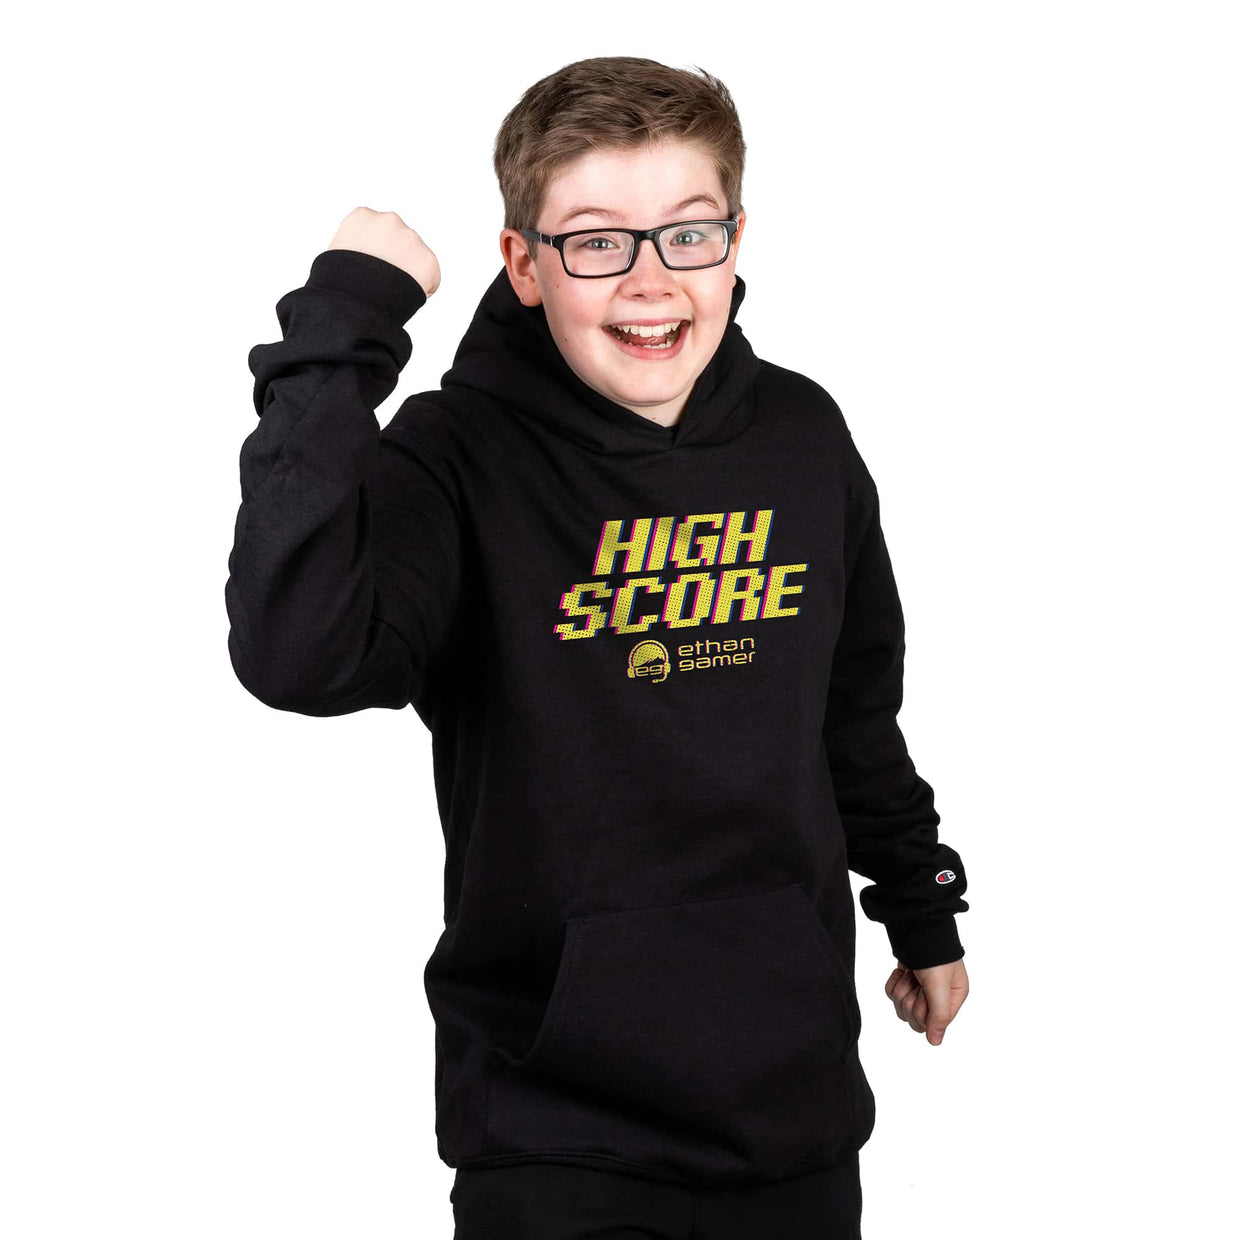 Ethan Gamer x Champion 'High Score' Hoodie